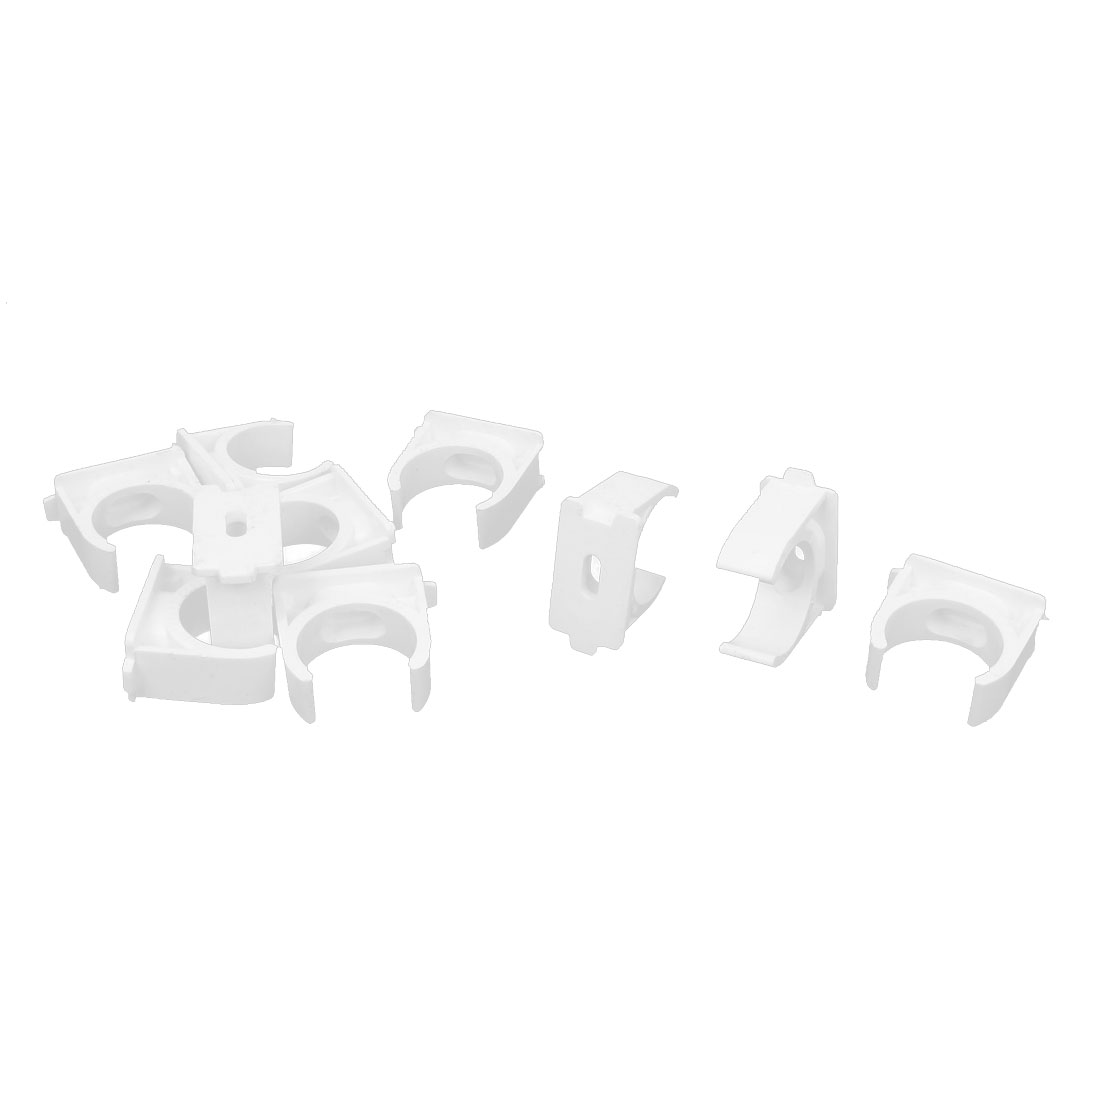 10pcs 25mm Diameter White Water Supply Pipe Tube Hose Clamps Snap in Clips Fittings